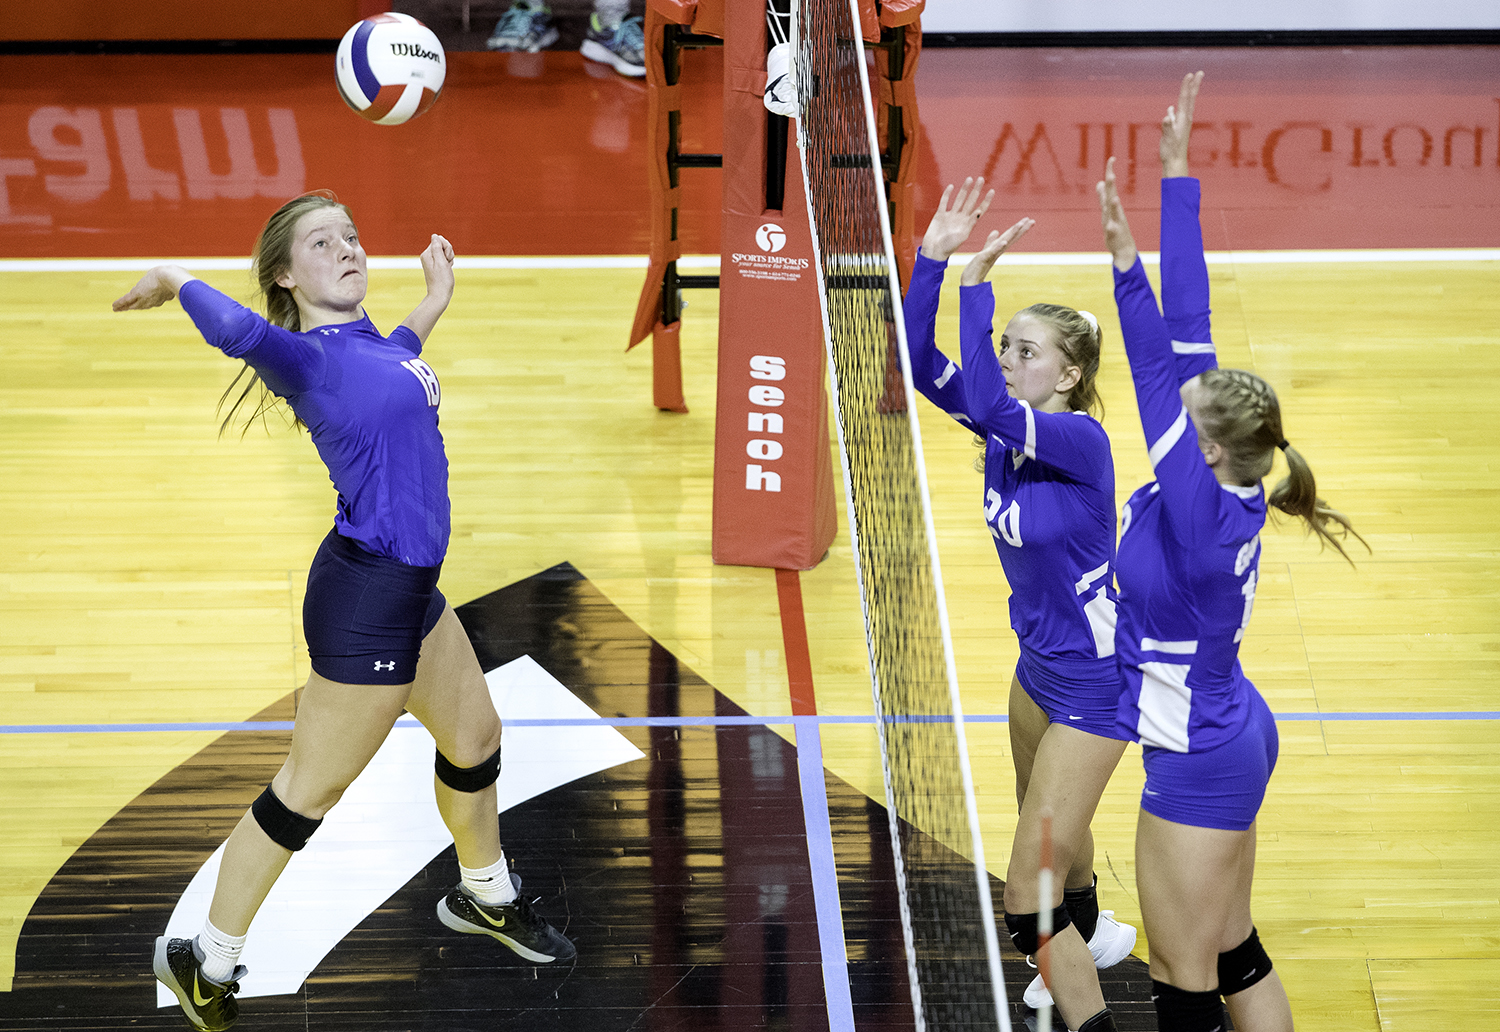 Pleasant Plains' Anna Kanllakan knotches a kill against Galena during the IHSA Class 2A Volleyball championship at Redbird Arena in Normal Saturday, Nov. 10, 2018. [Ted Schurter/The State Journal-Register]